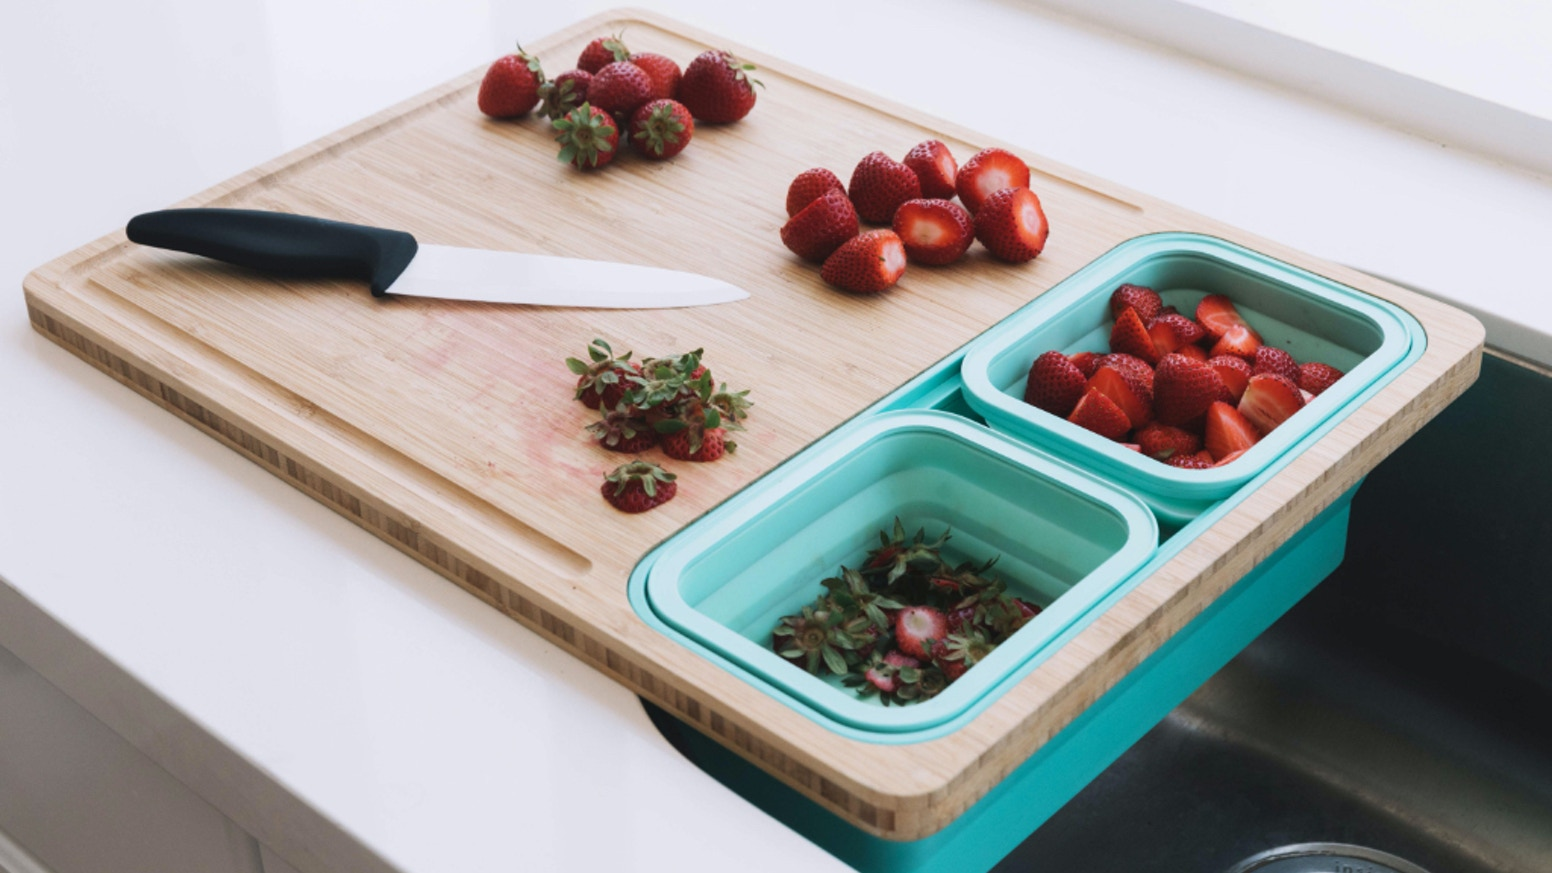 Save space in your kitchen — Bamboo cutting board to quickly clean, prep and store your food easily.